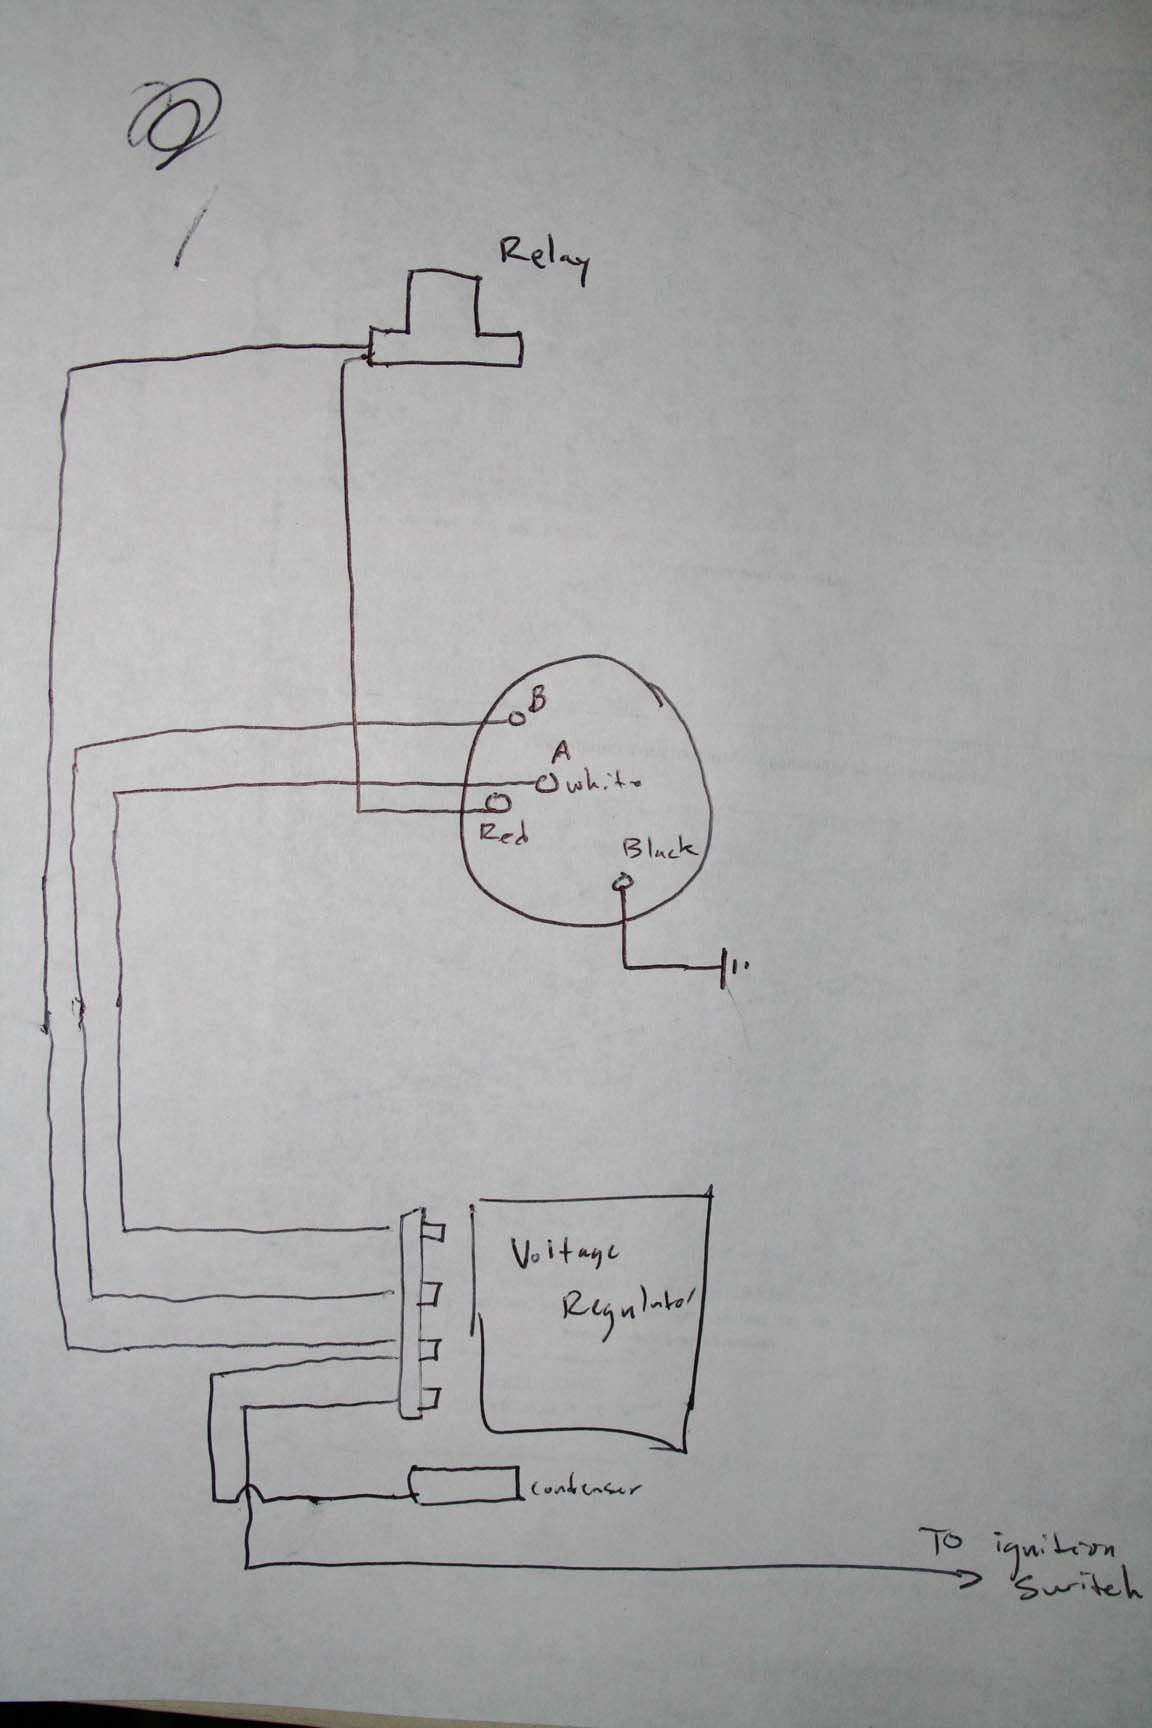 ford charging system wiring diagram 2006 chevy silverado 2500 radio voltage regulator alt on 67 coupe have a wire i 39m